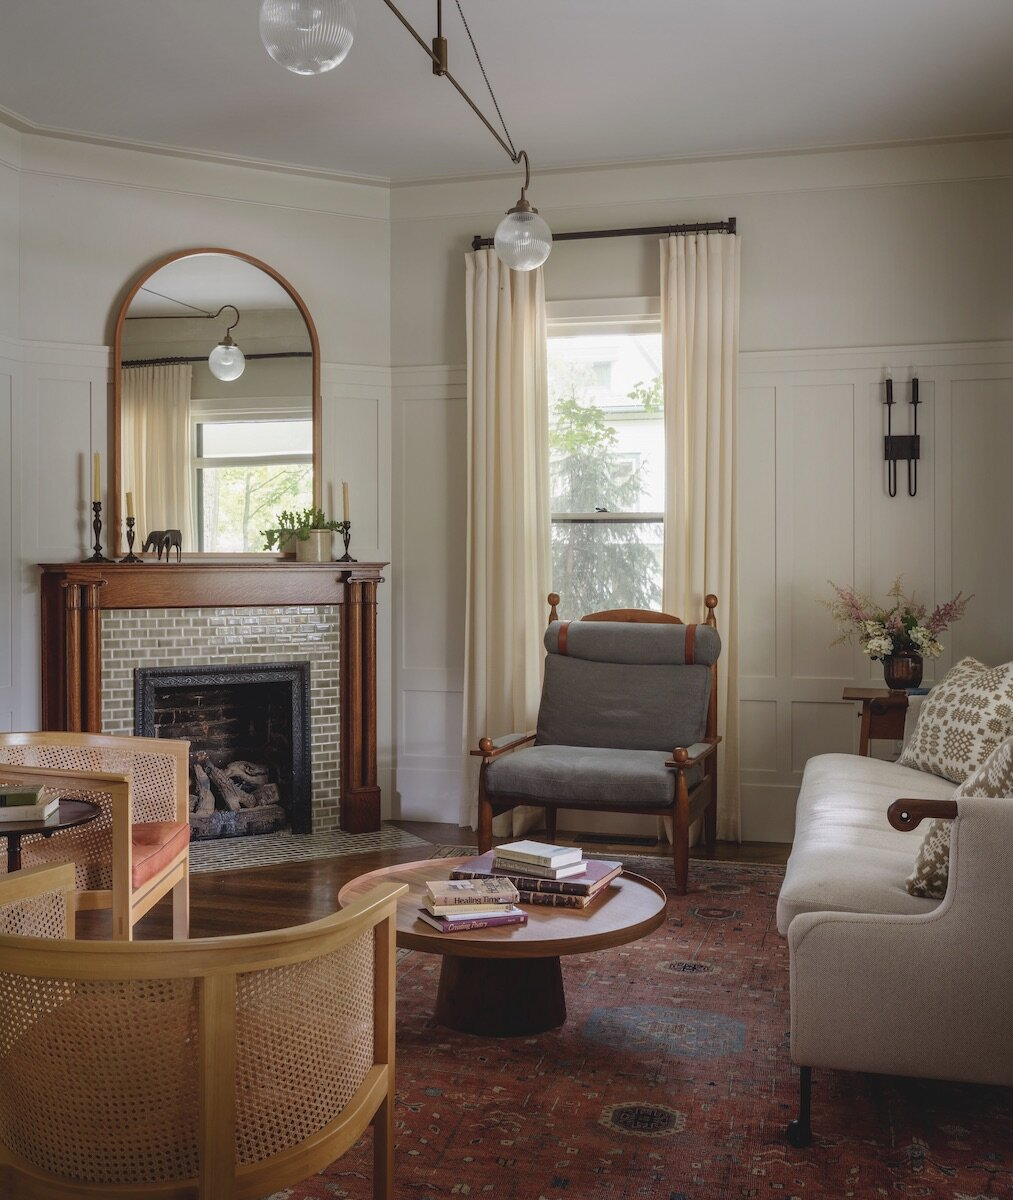 living-room-fireplace-iowa-city-house-jessica-helgerson-nordroom